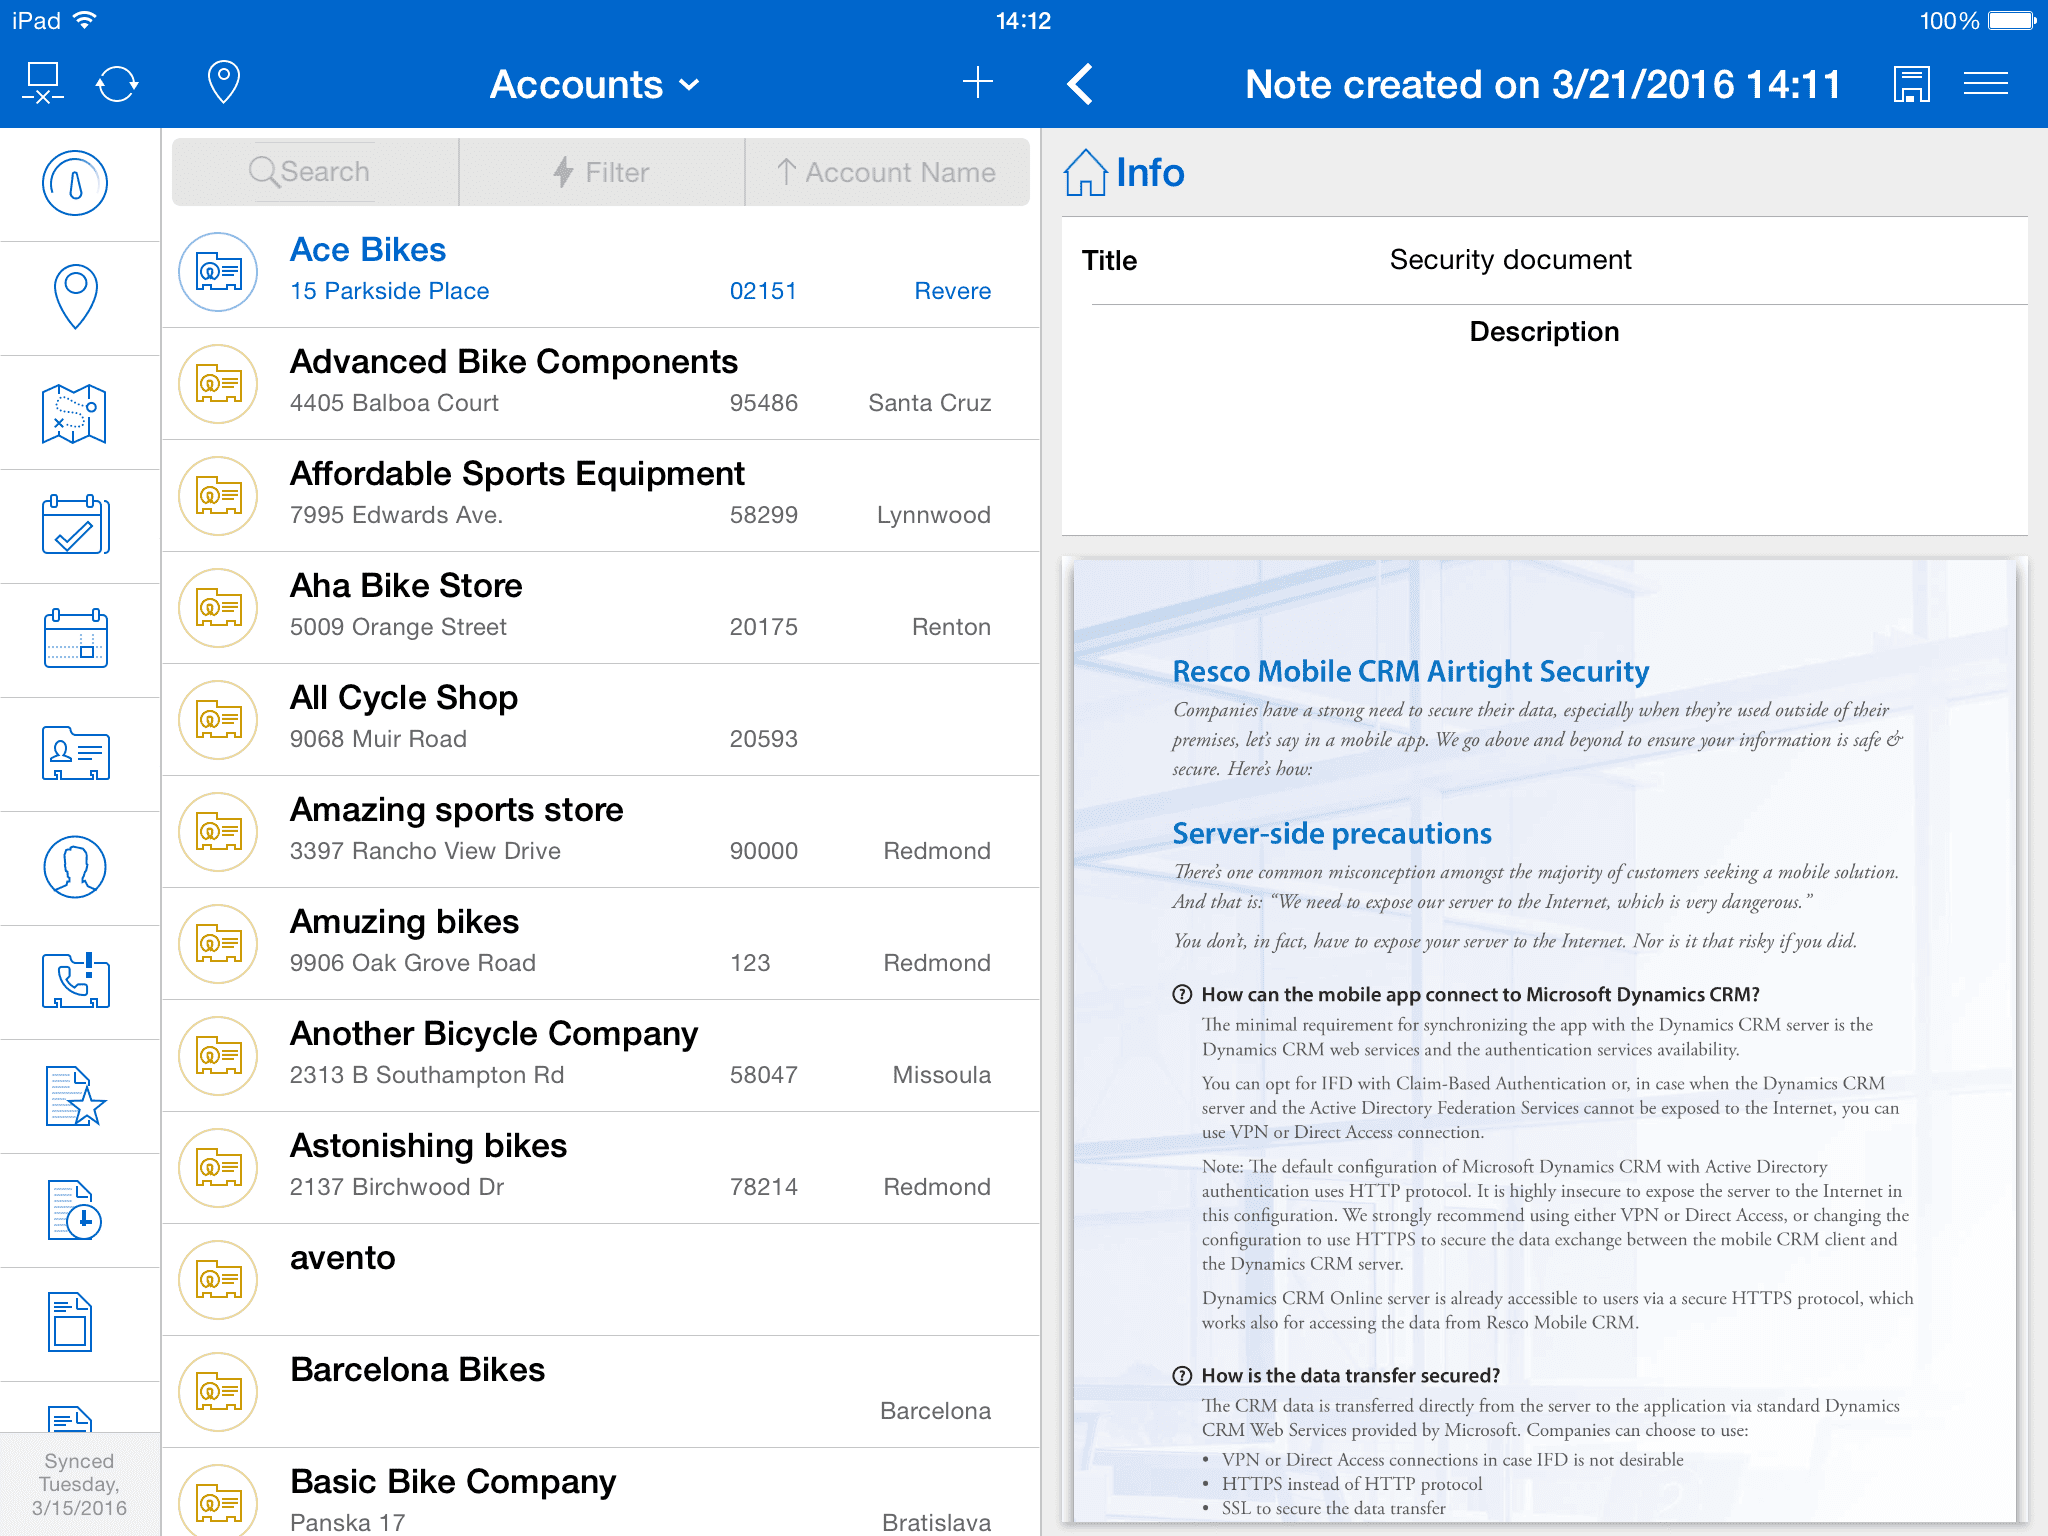 Document copied into Resco Mobile CRM from an email